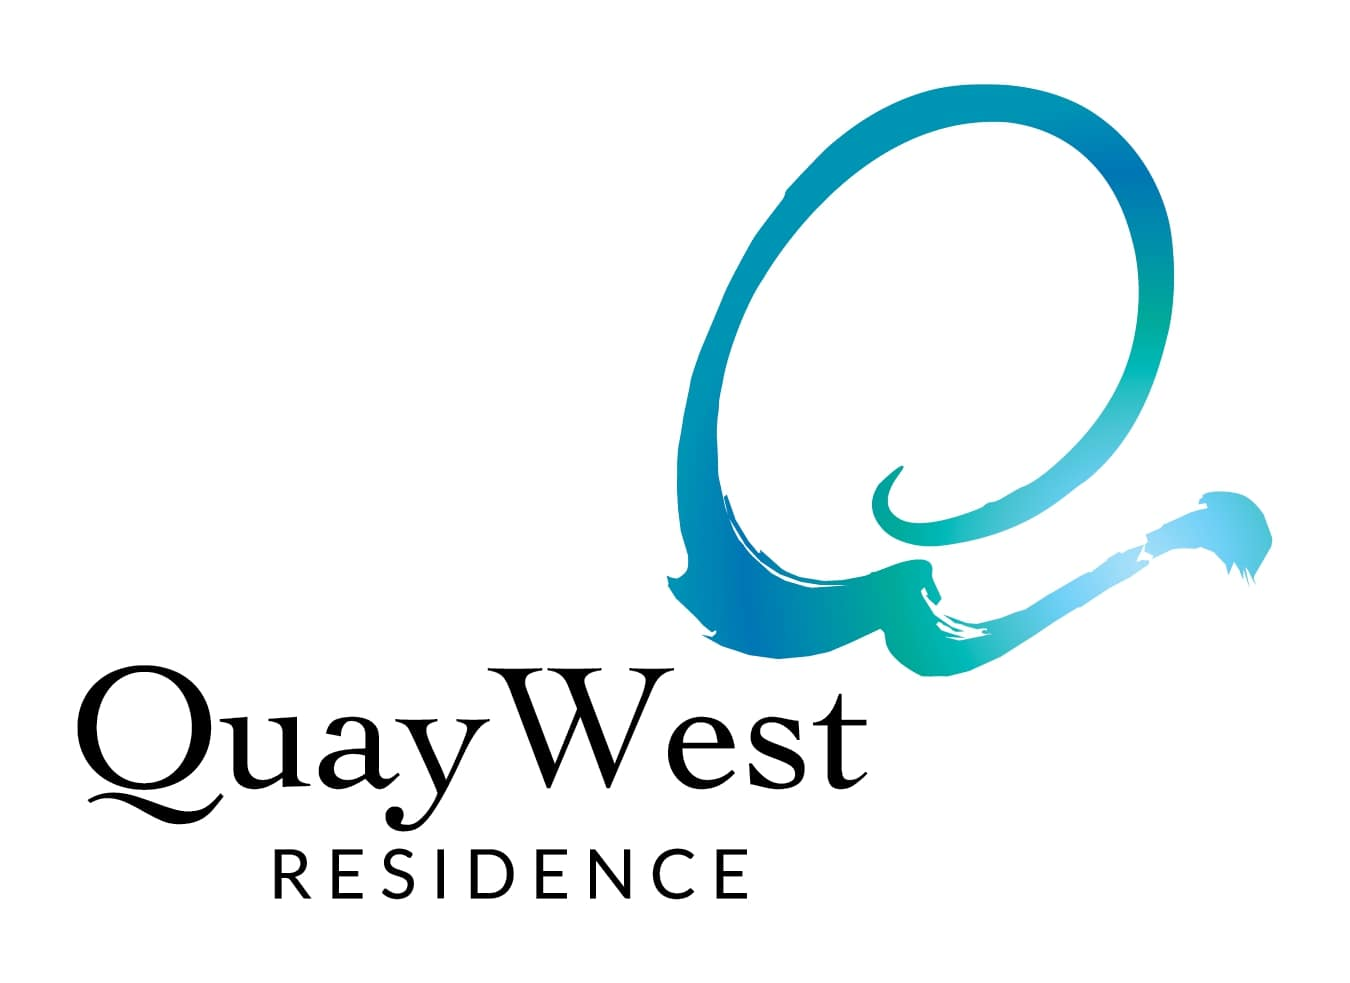 Quay West Residence